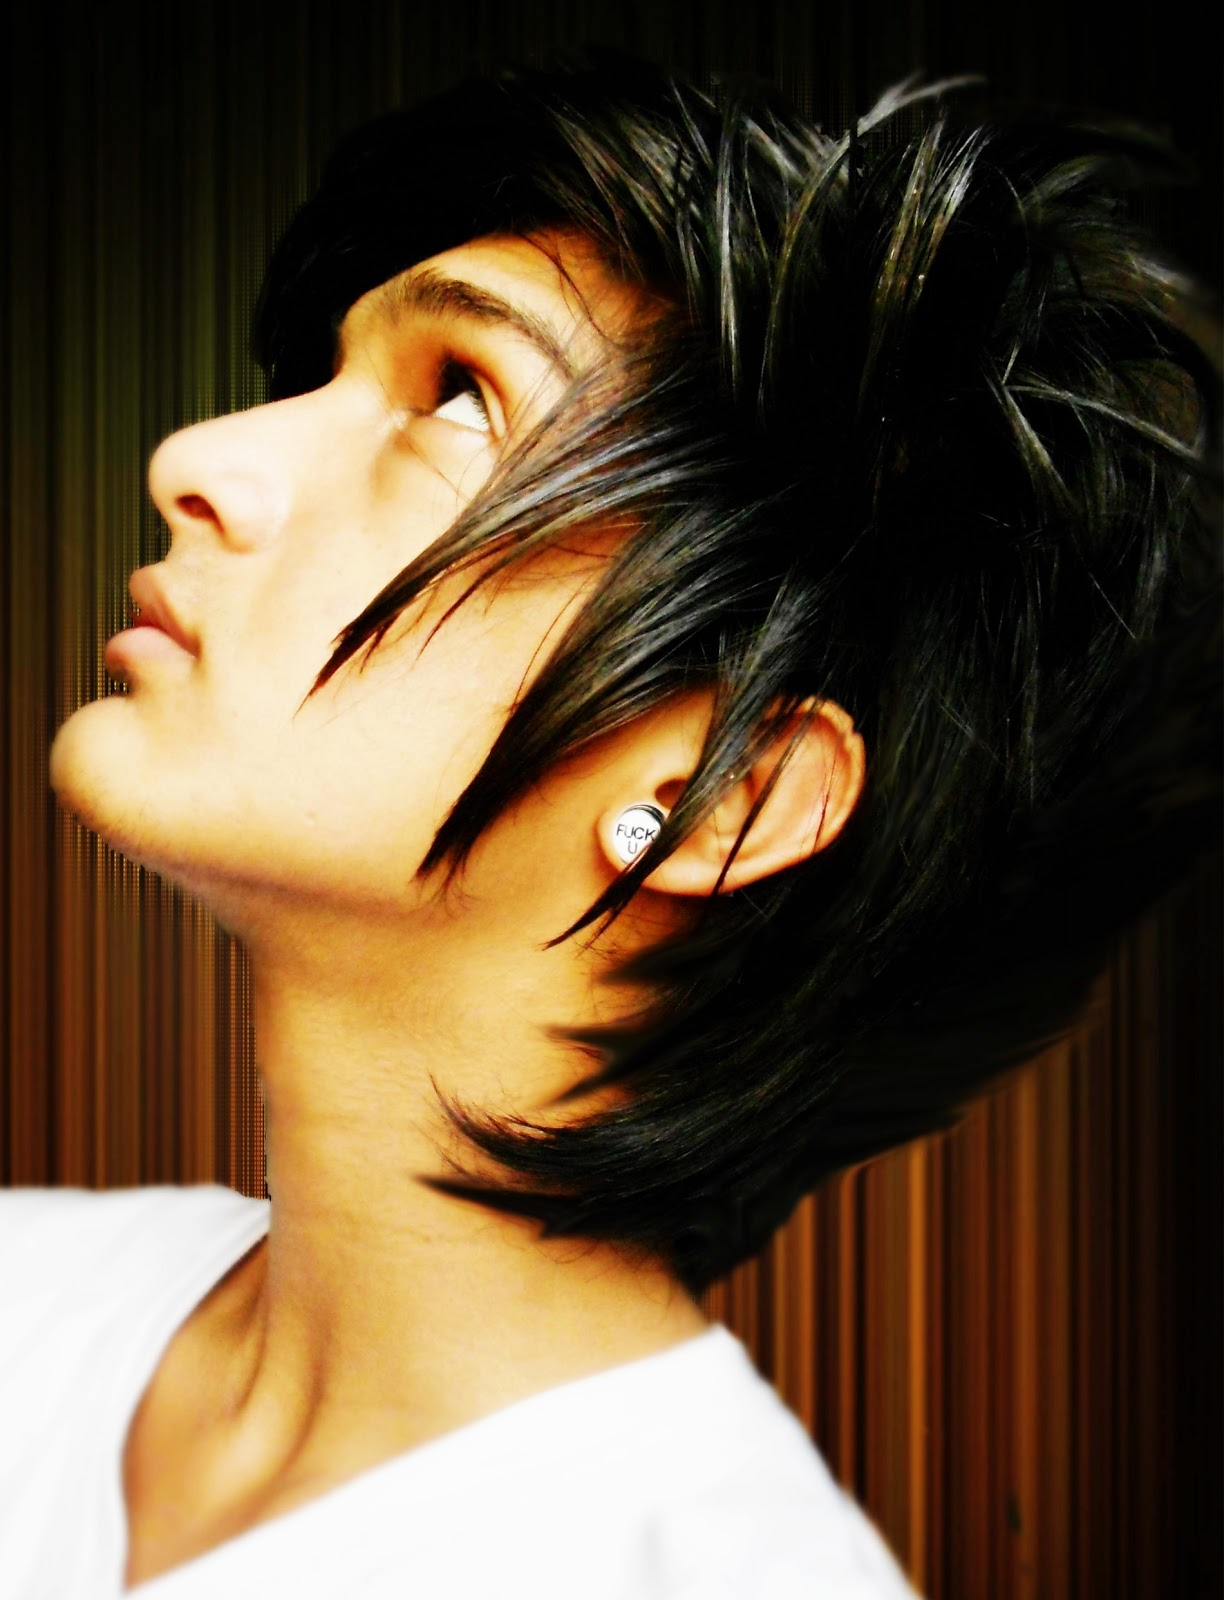 Smart Attitude Girl Hd Wallpaper 100 Cool Boys Dps Amp Profile Pictures For Whatsapp Amp Facebook